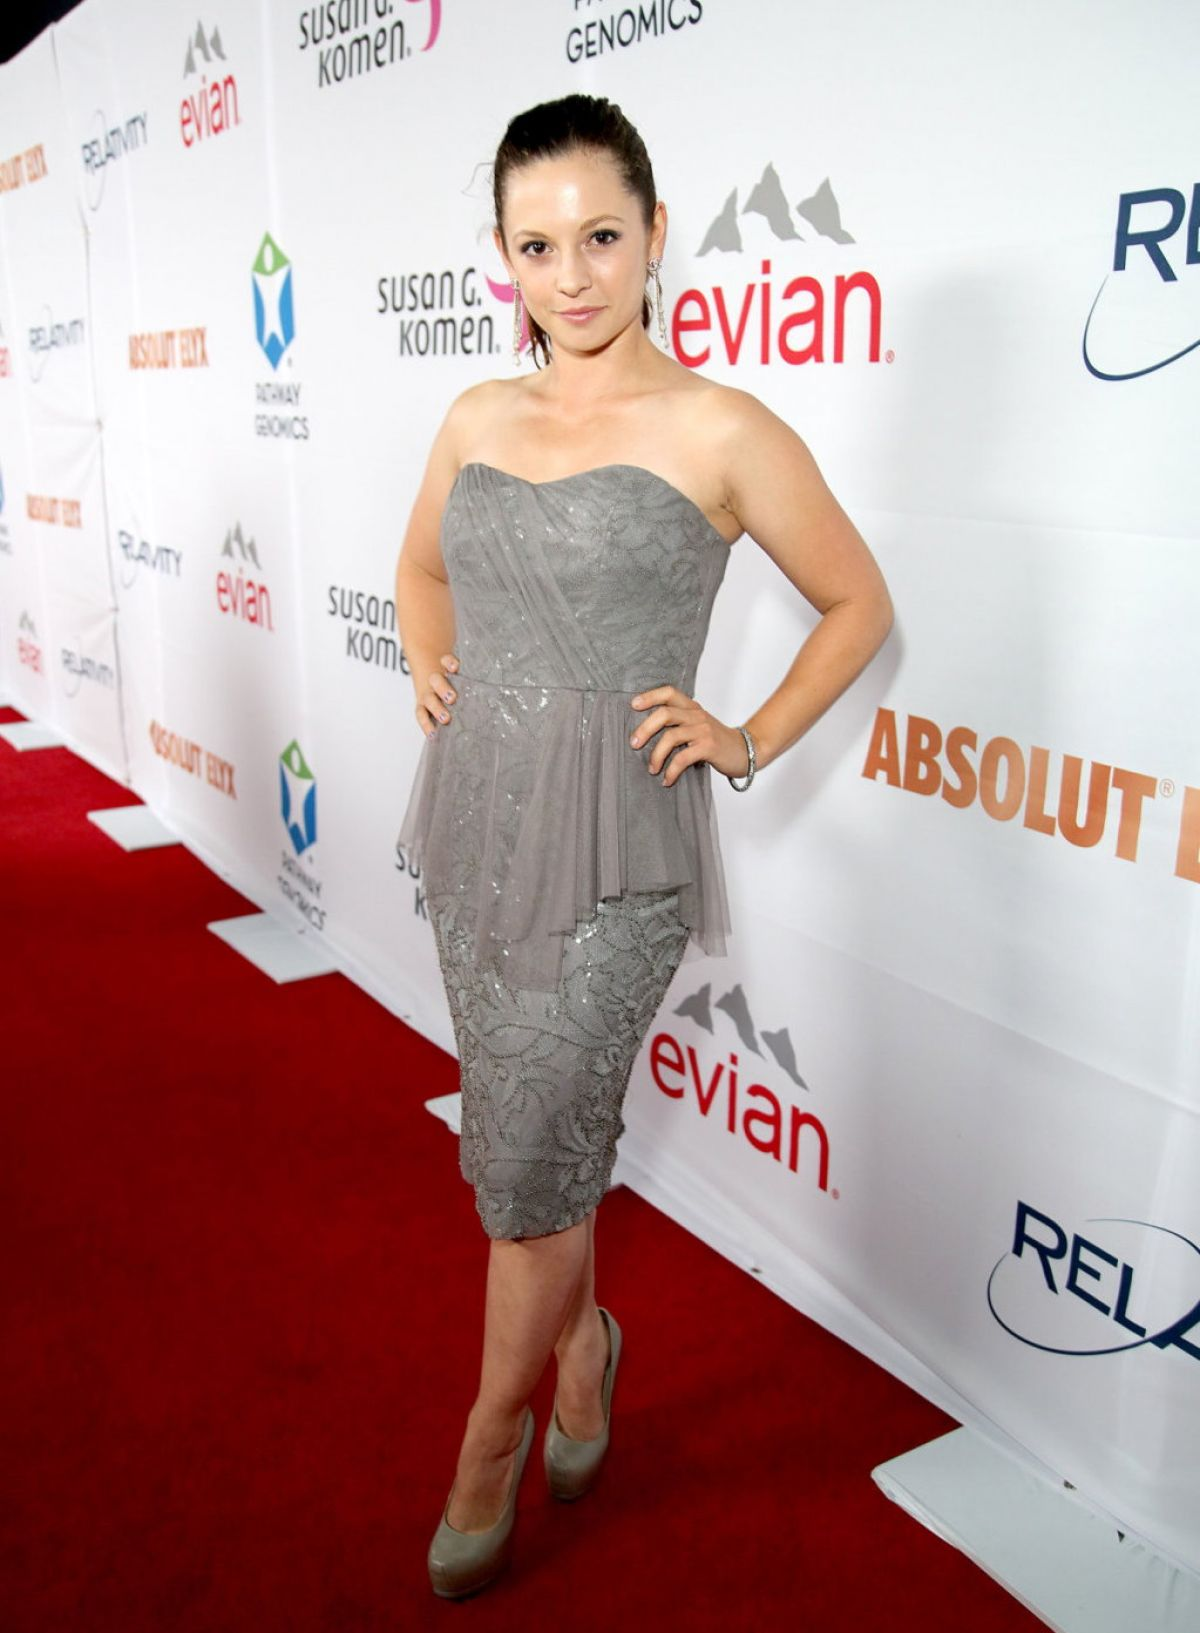 MACKENZIE ROSMAN at Pathway to the Cure Fundraiser Benefit in Santa Monica